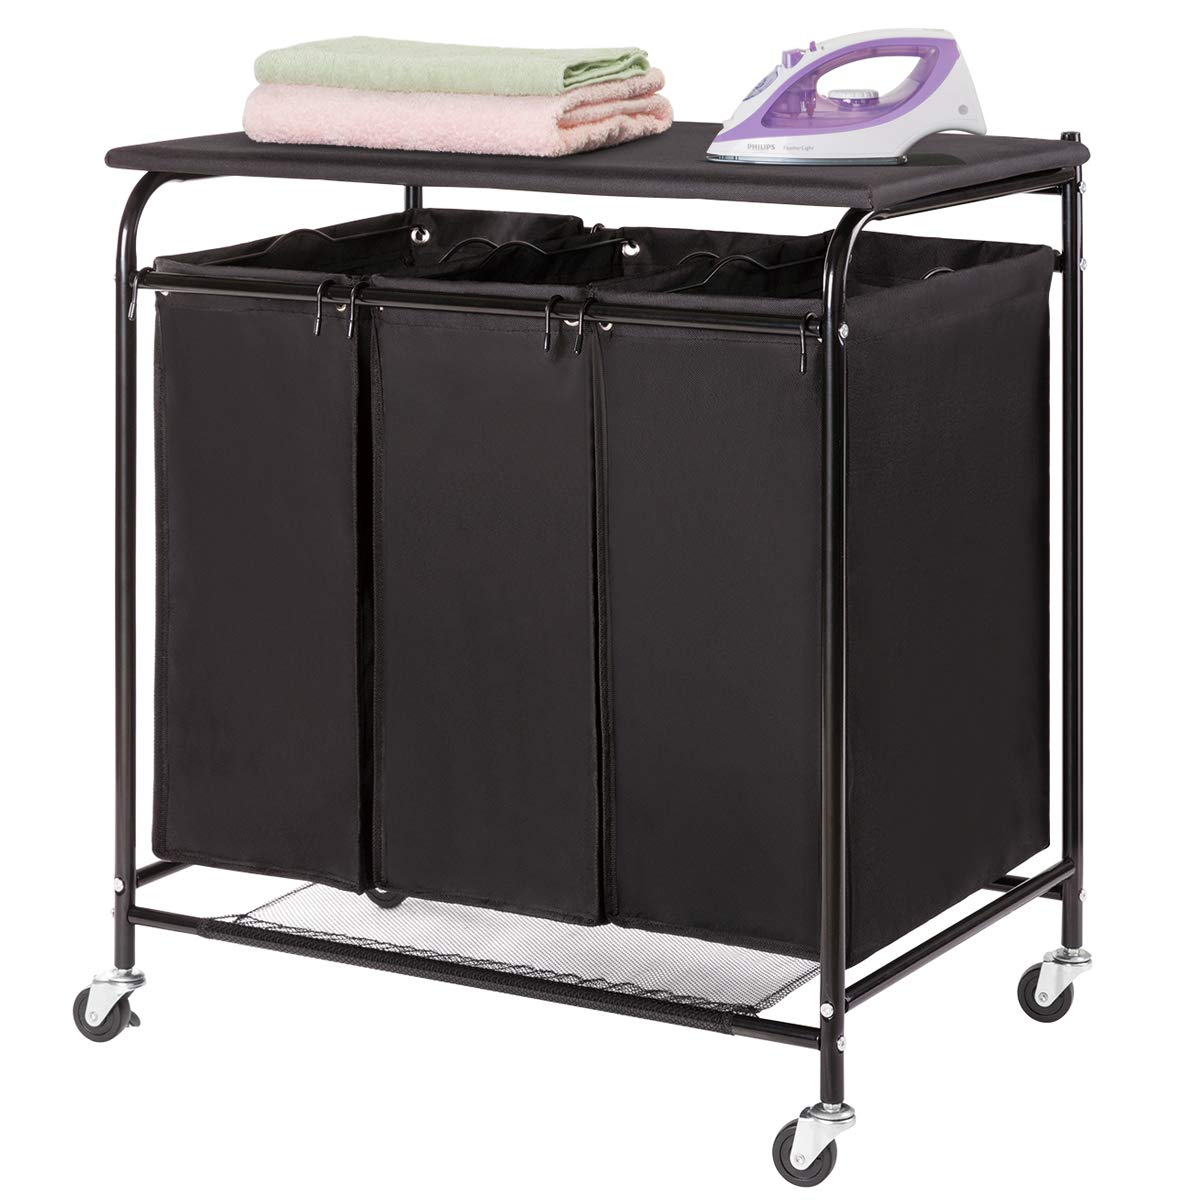 HollyHOME Laundry Sorter Cart with Foldable Ironing Board with 3 Lift-Off Bags Rolling Heavy-Duty Laundry Hamper with Removable Bags Mobile Brake Caster Black